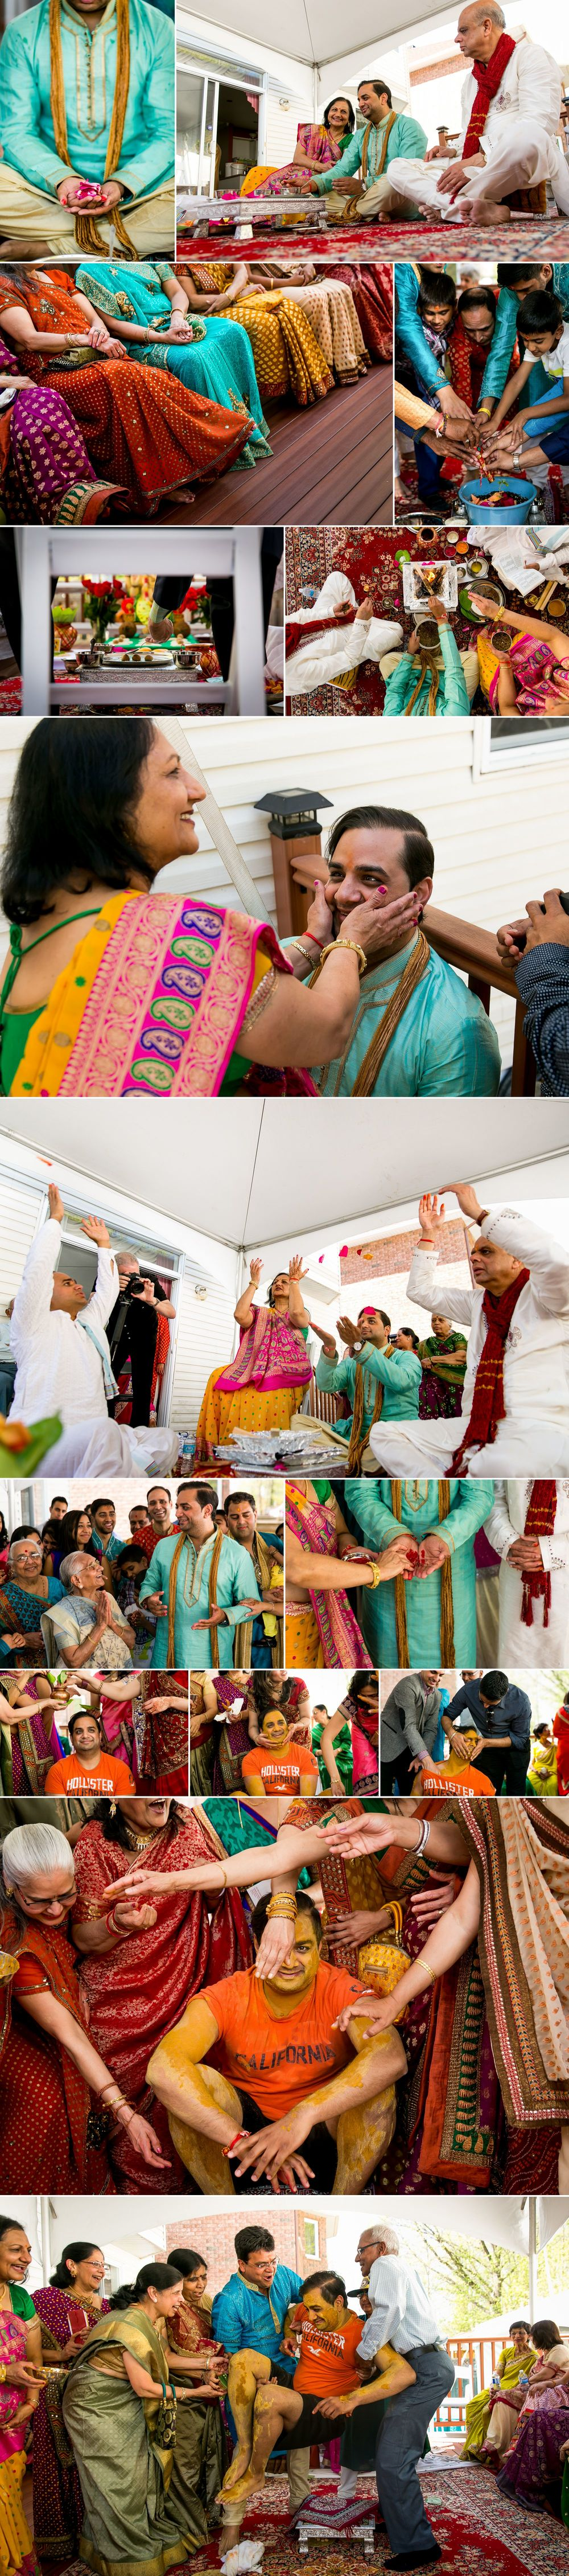 Groom's side Hindu wedding ceremony